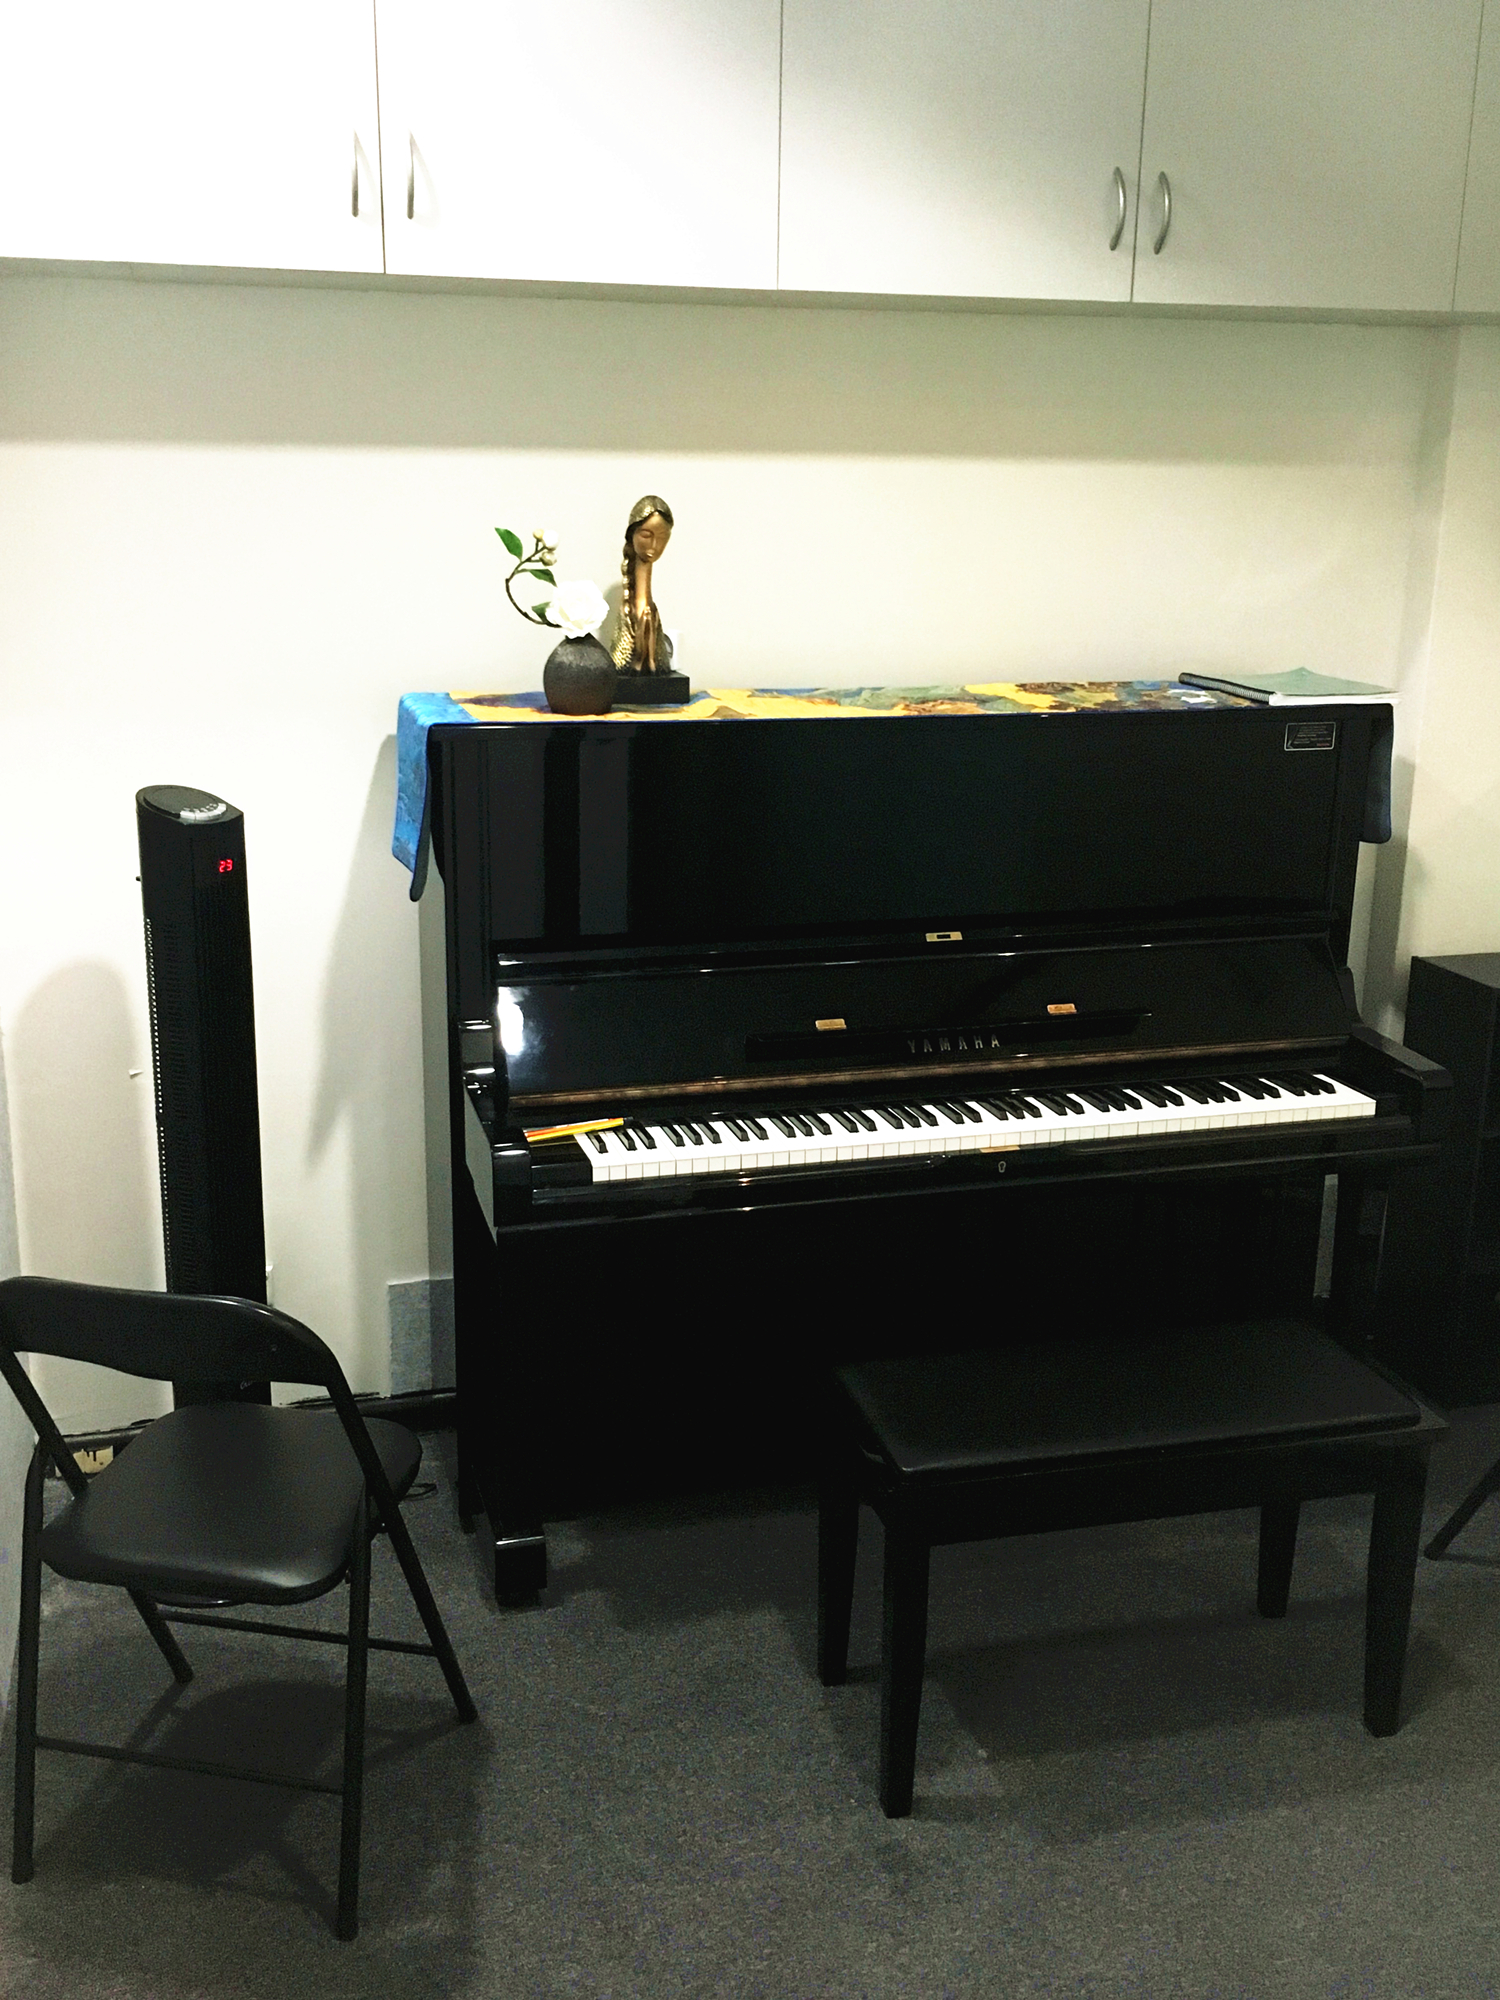 upright piano room hire sydney CBD